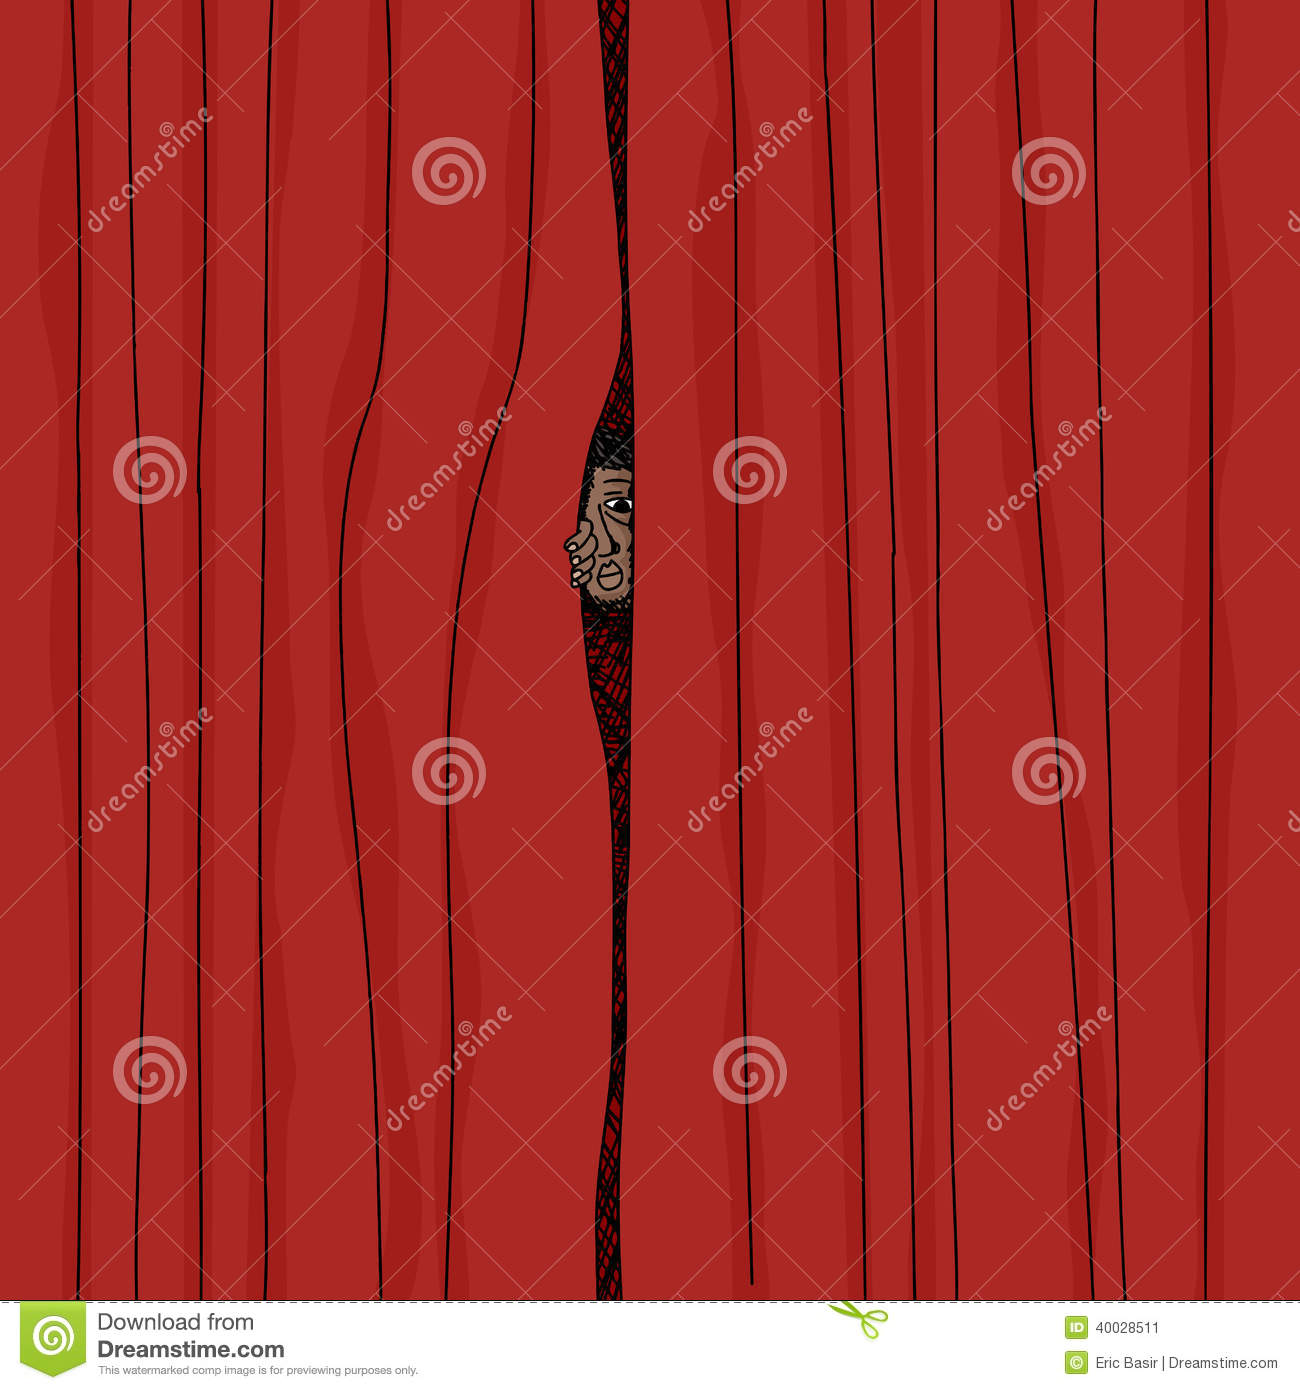 Peeking curtain cartoon man behind red curtains 40028511 jpg